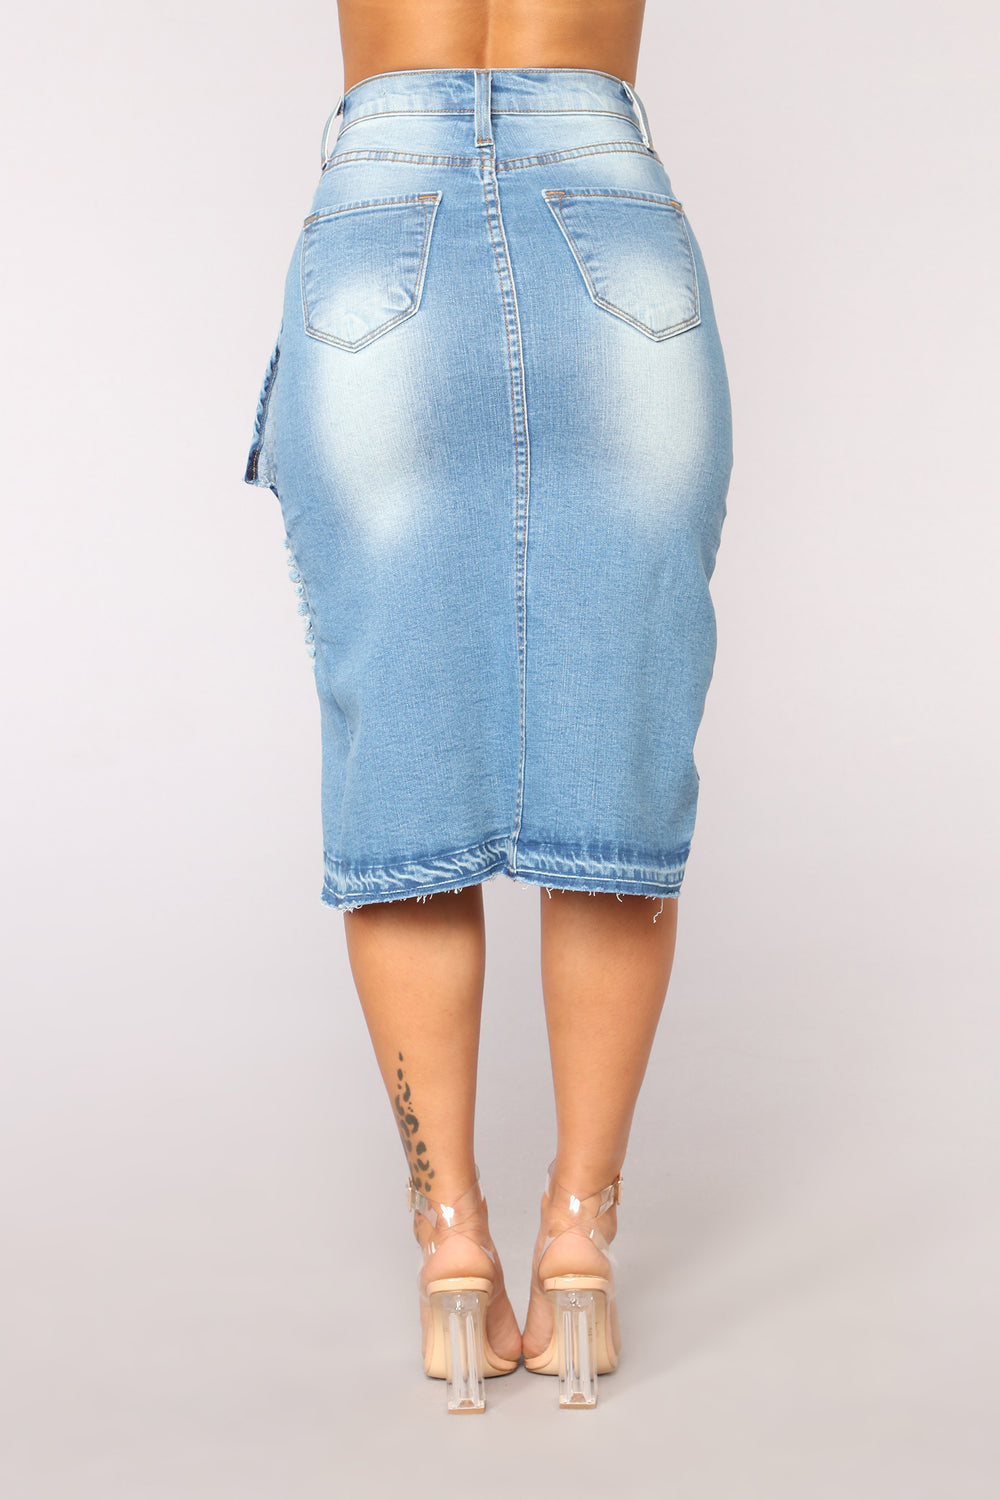 You Wish Denim Skirt - Medium Blue Wash